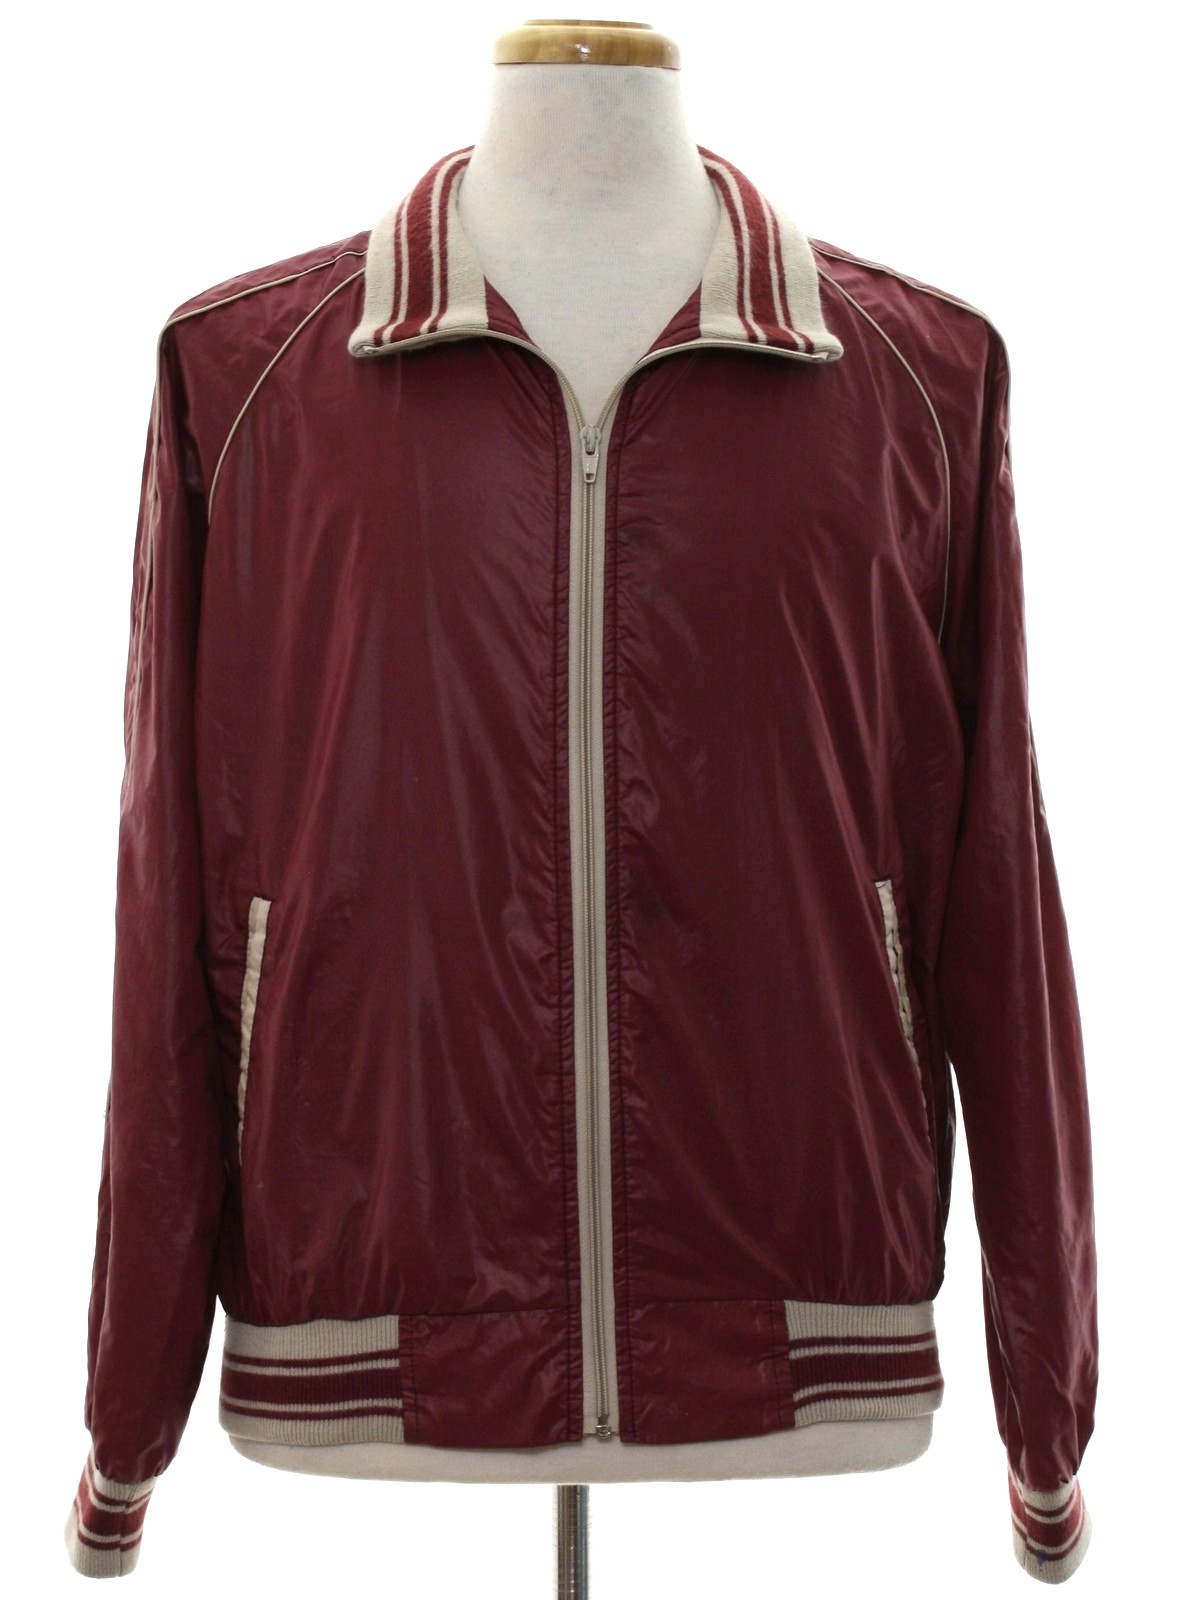 594e6e4882a3 Retro Eighties Jacket  80s -Supreme- Mens mulberry and off white ...